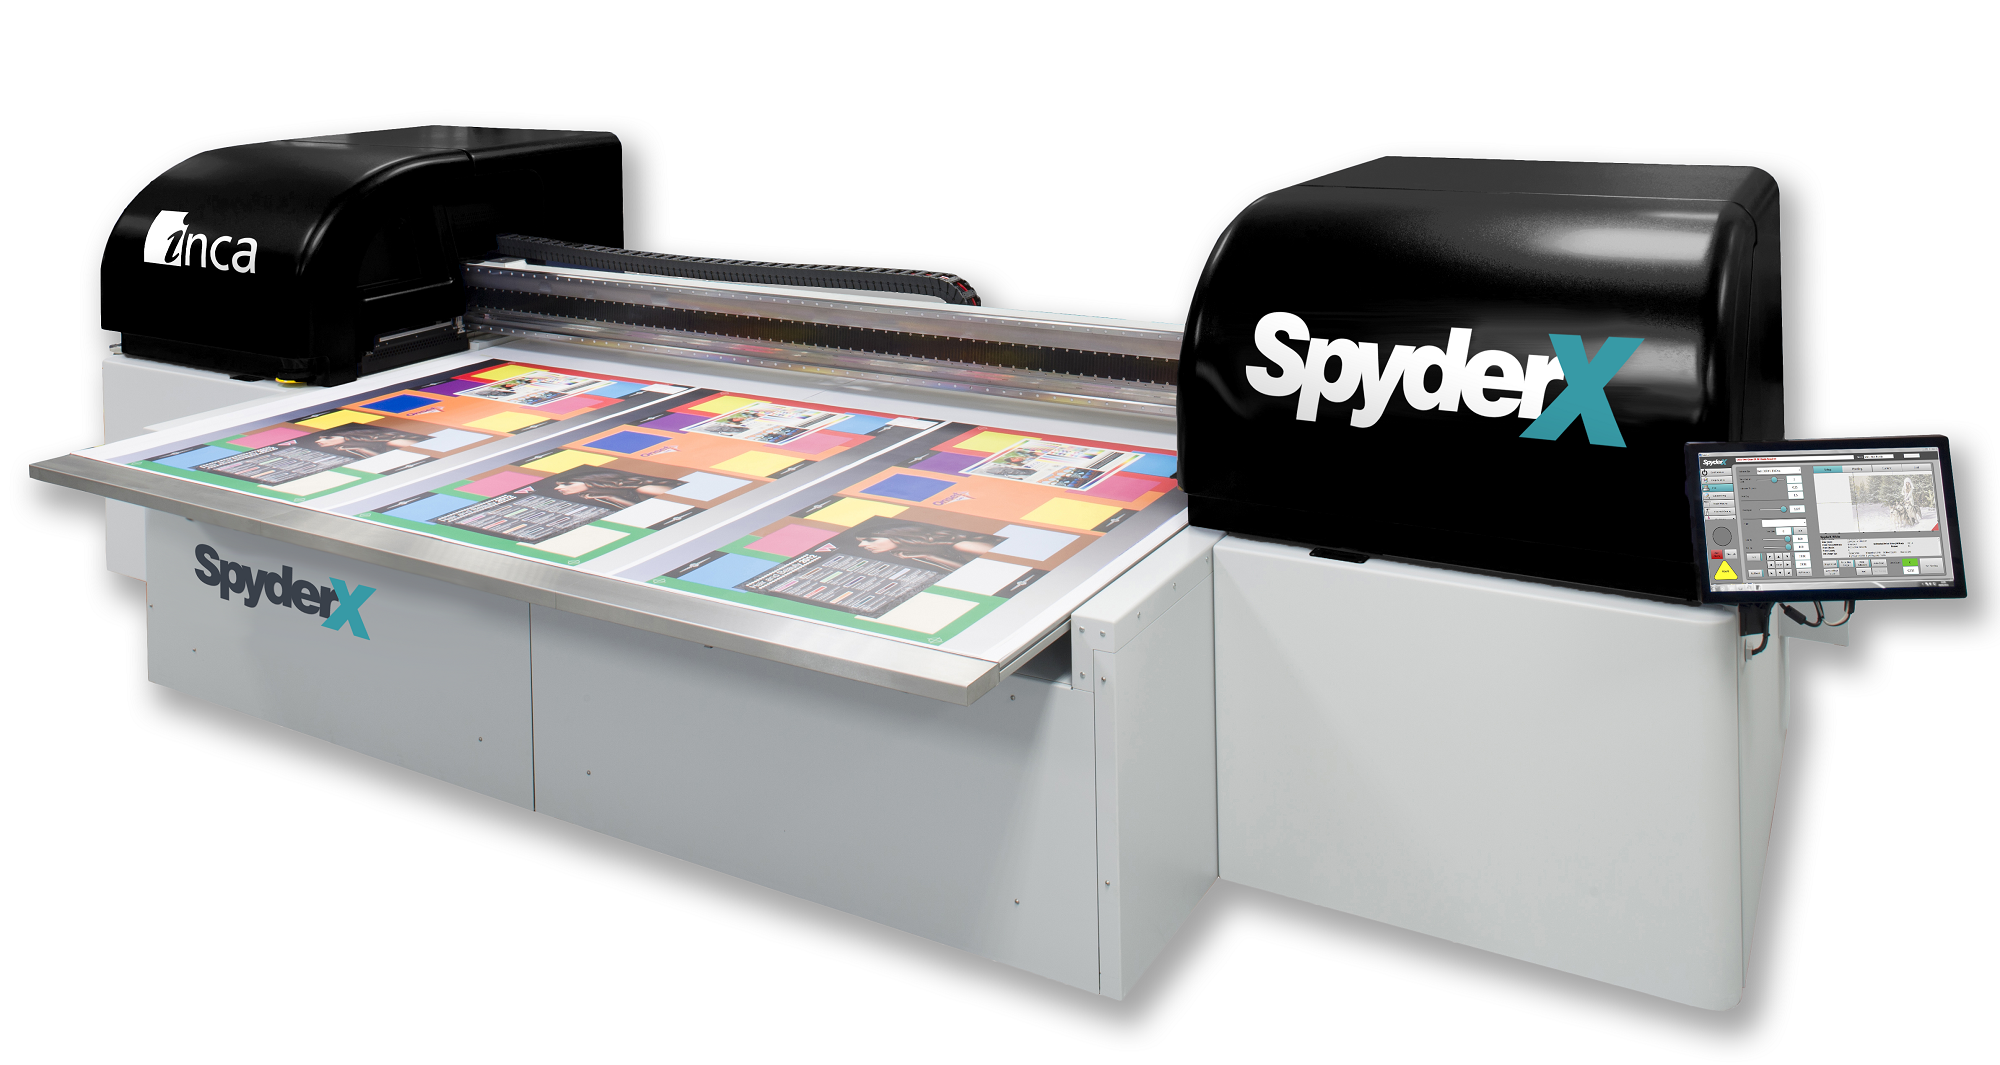 The SpyderX is a 'Workhorse' at Color Ink